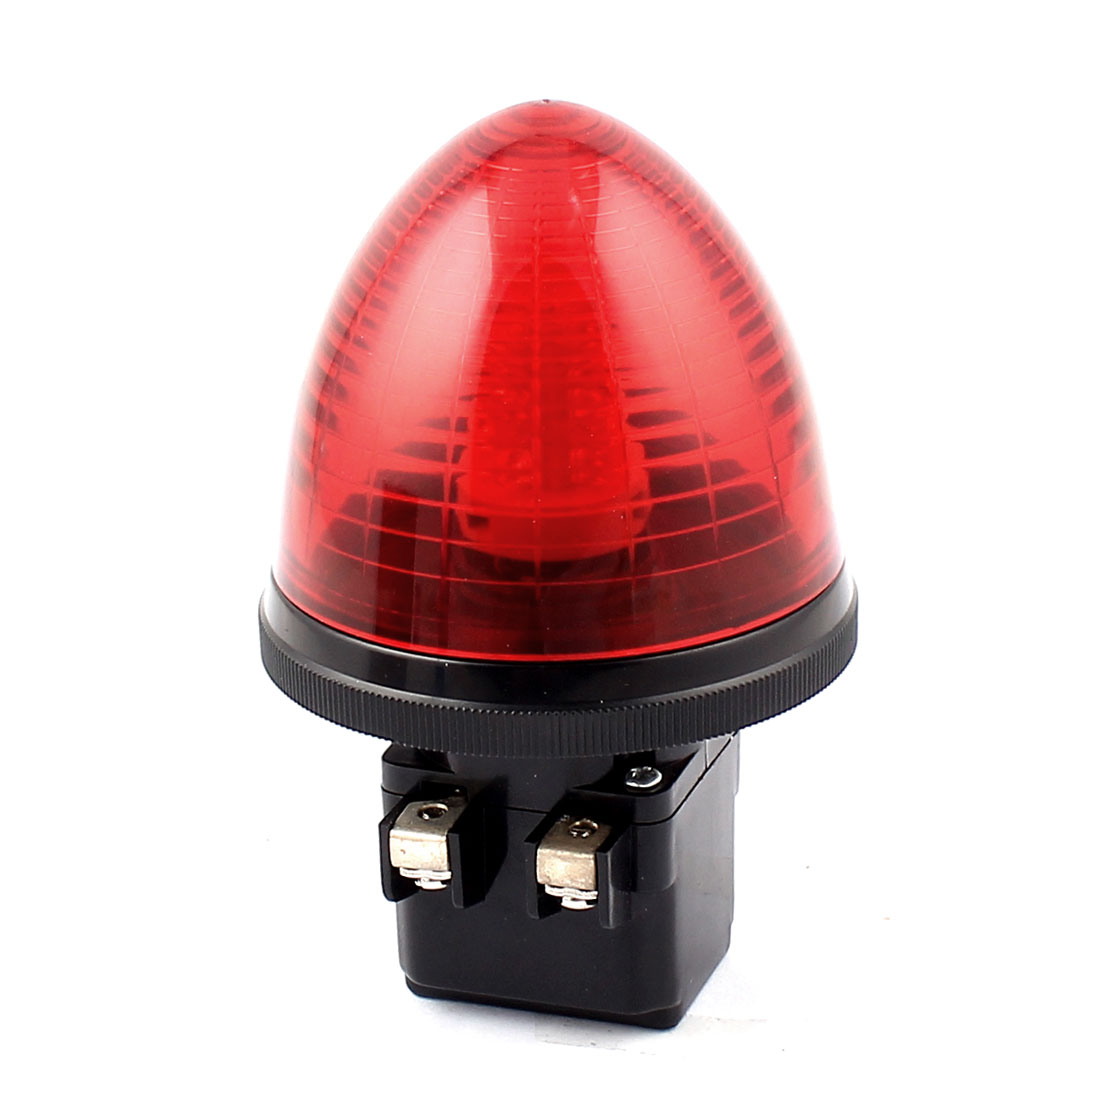 Red LED Bulb Screw Mounted Industrial Signal Alarm Light